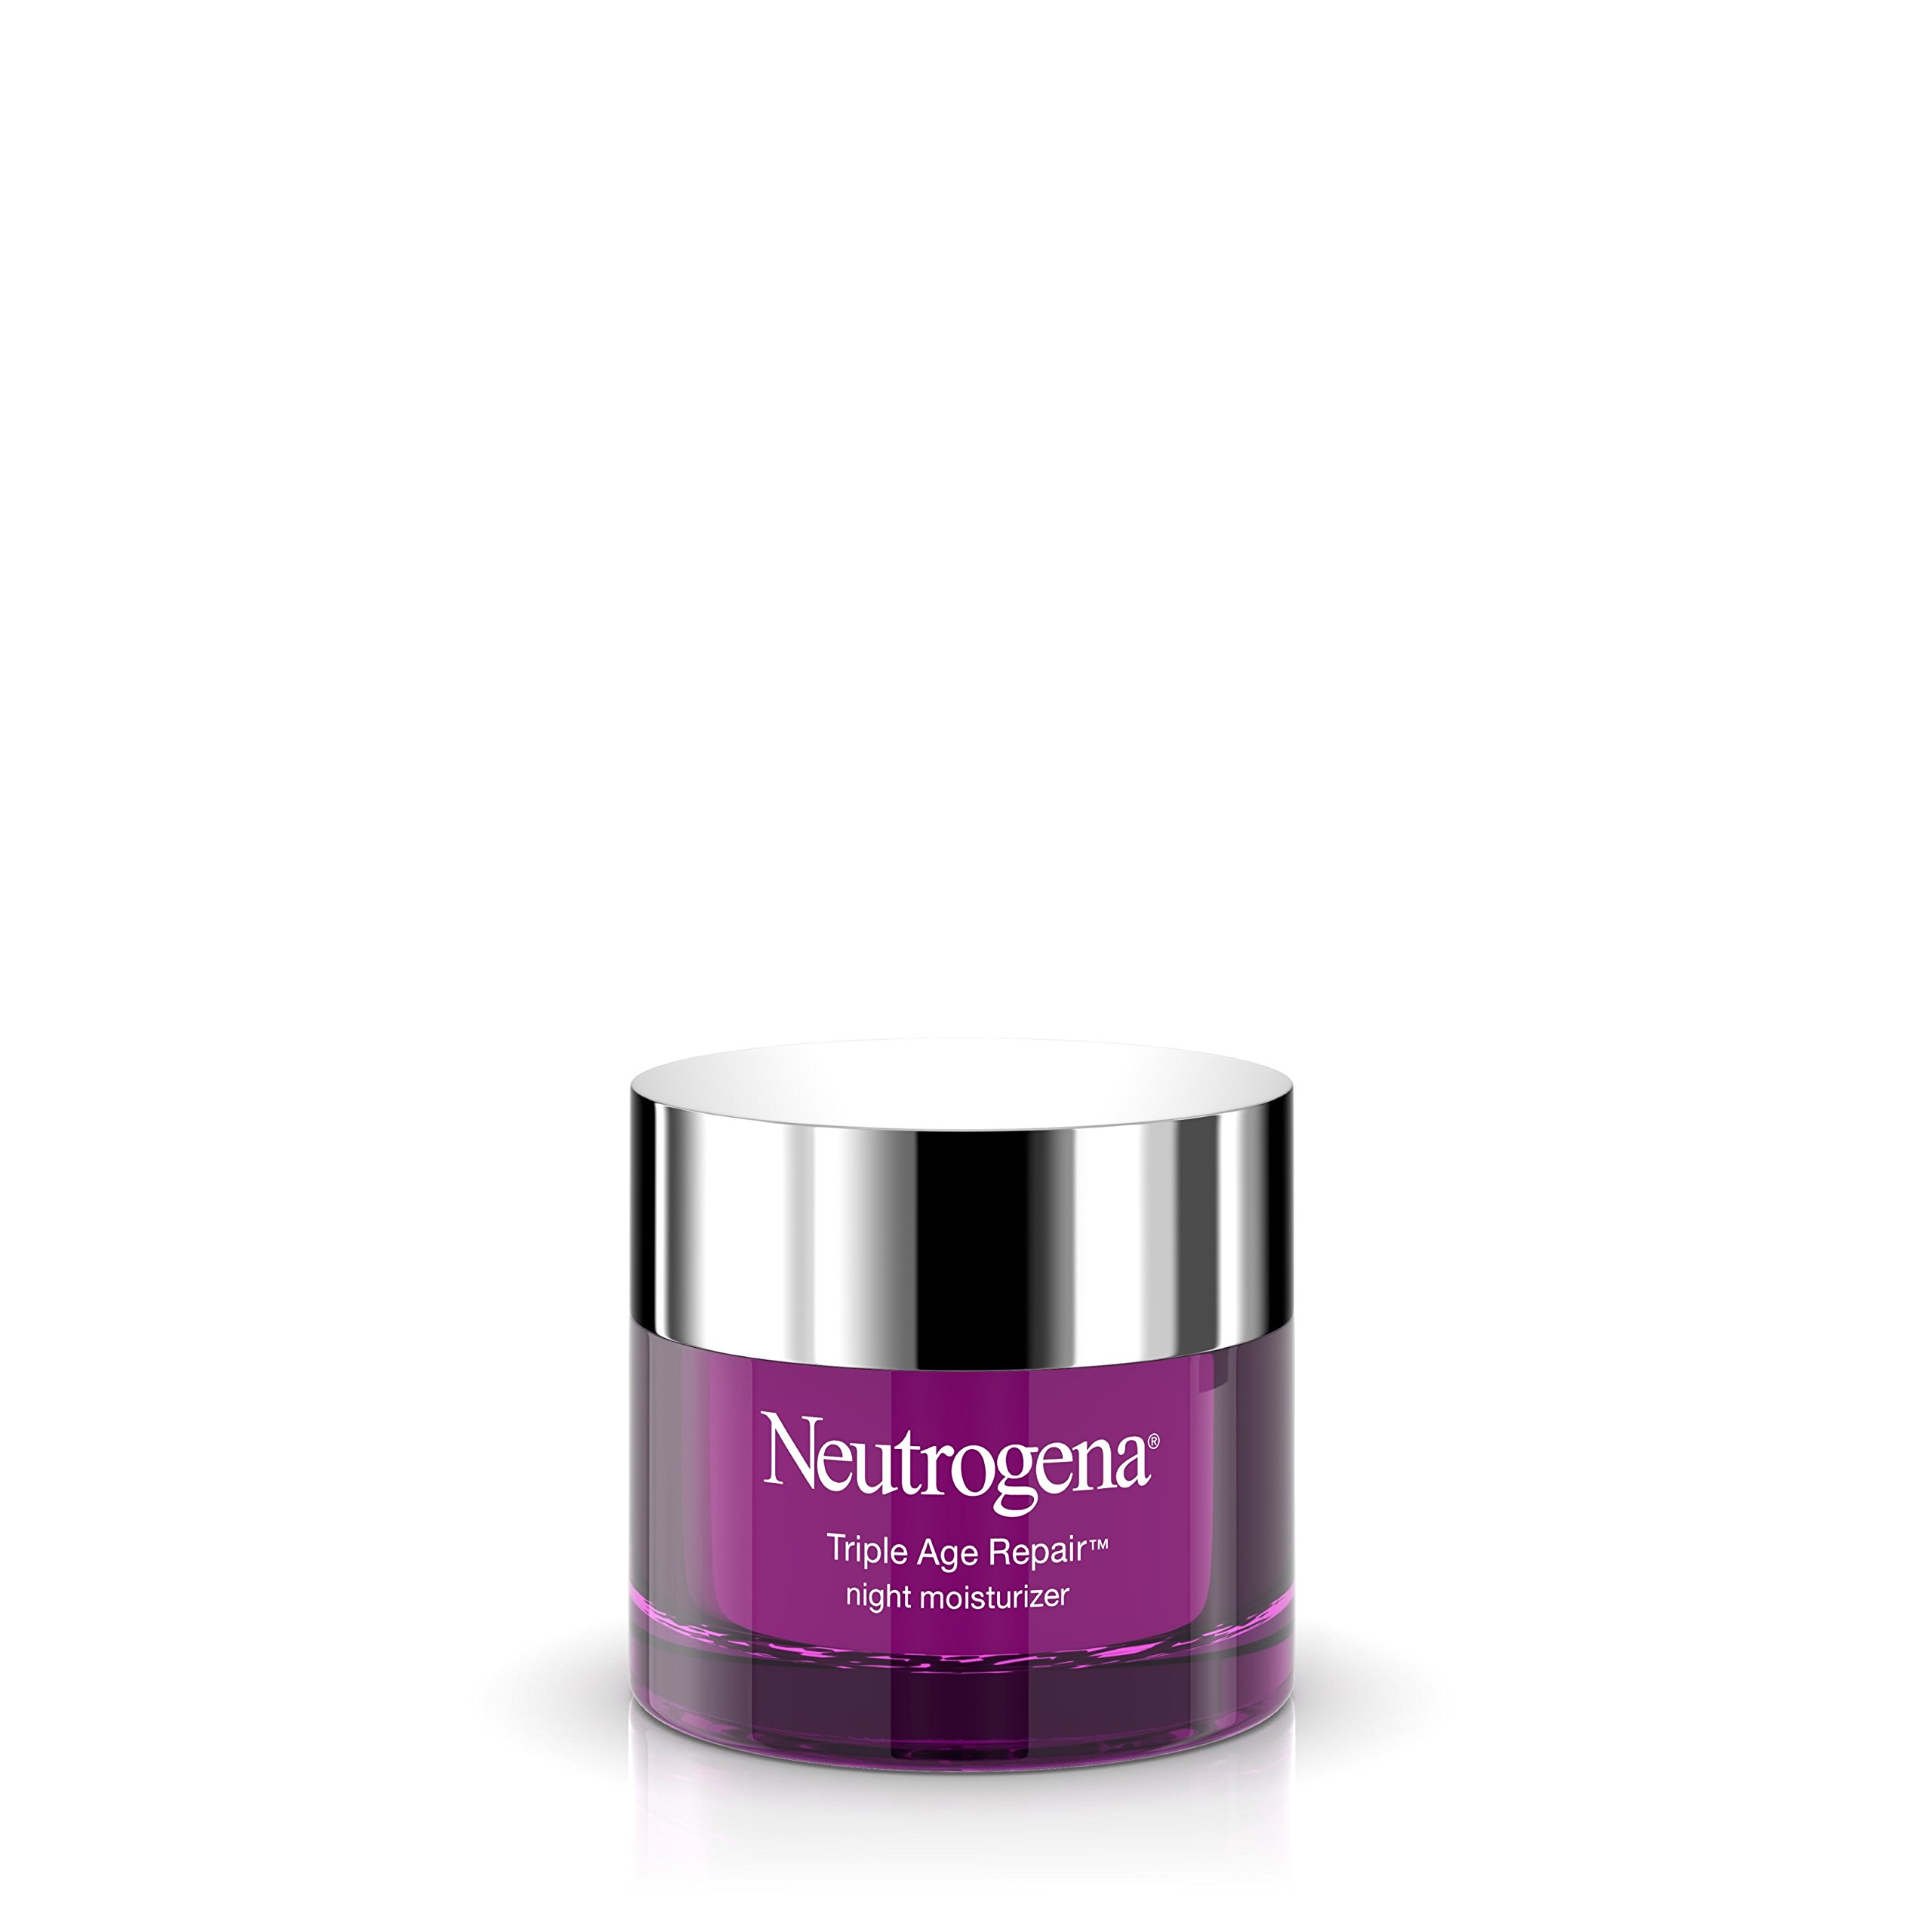 Neutrogena Triple Age Repair Moisturizer, Night, 1.7 Oz